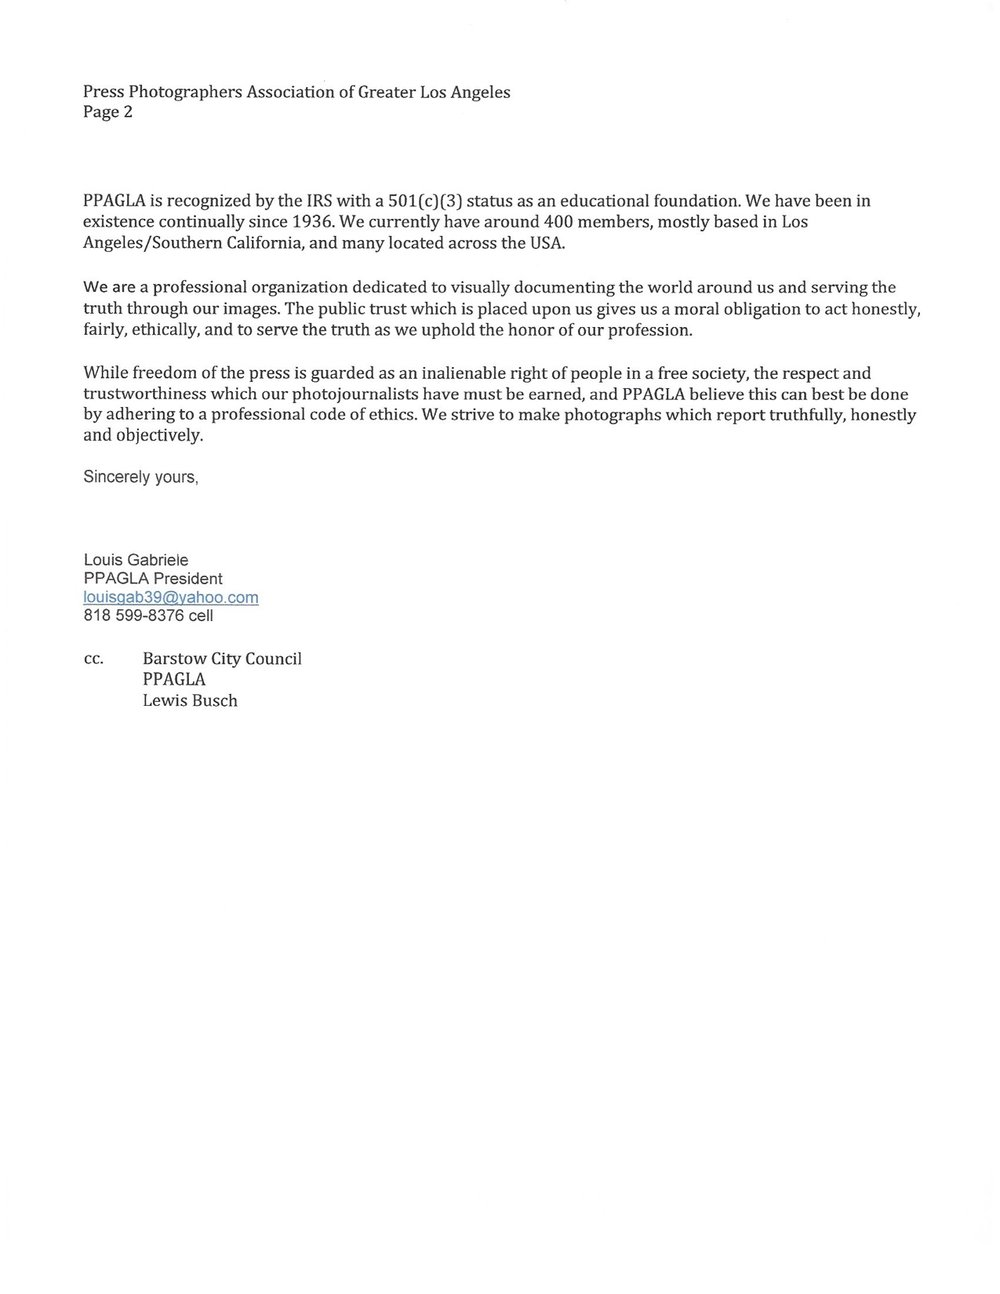 Letter to the Barsttow Police Chief 2.jpg